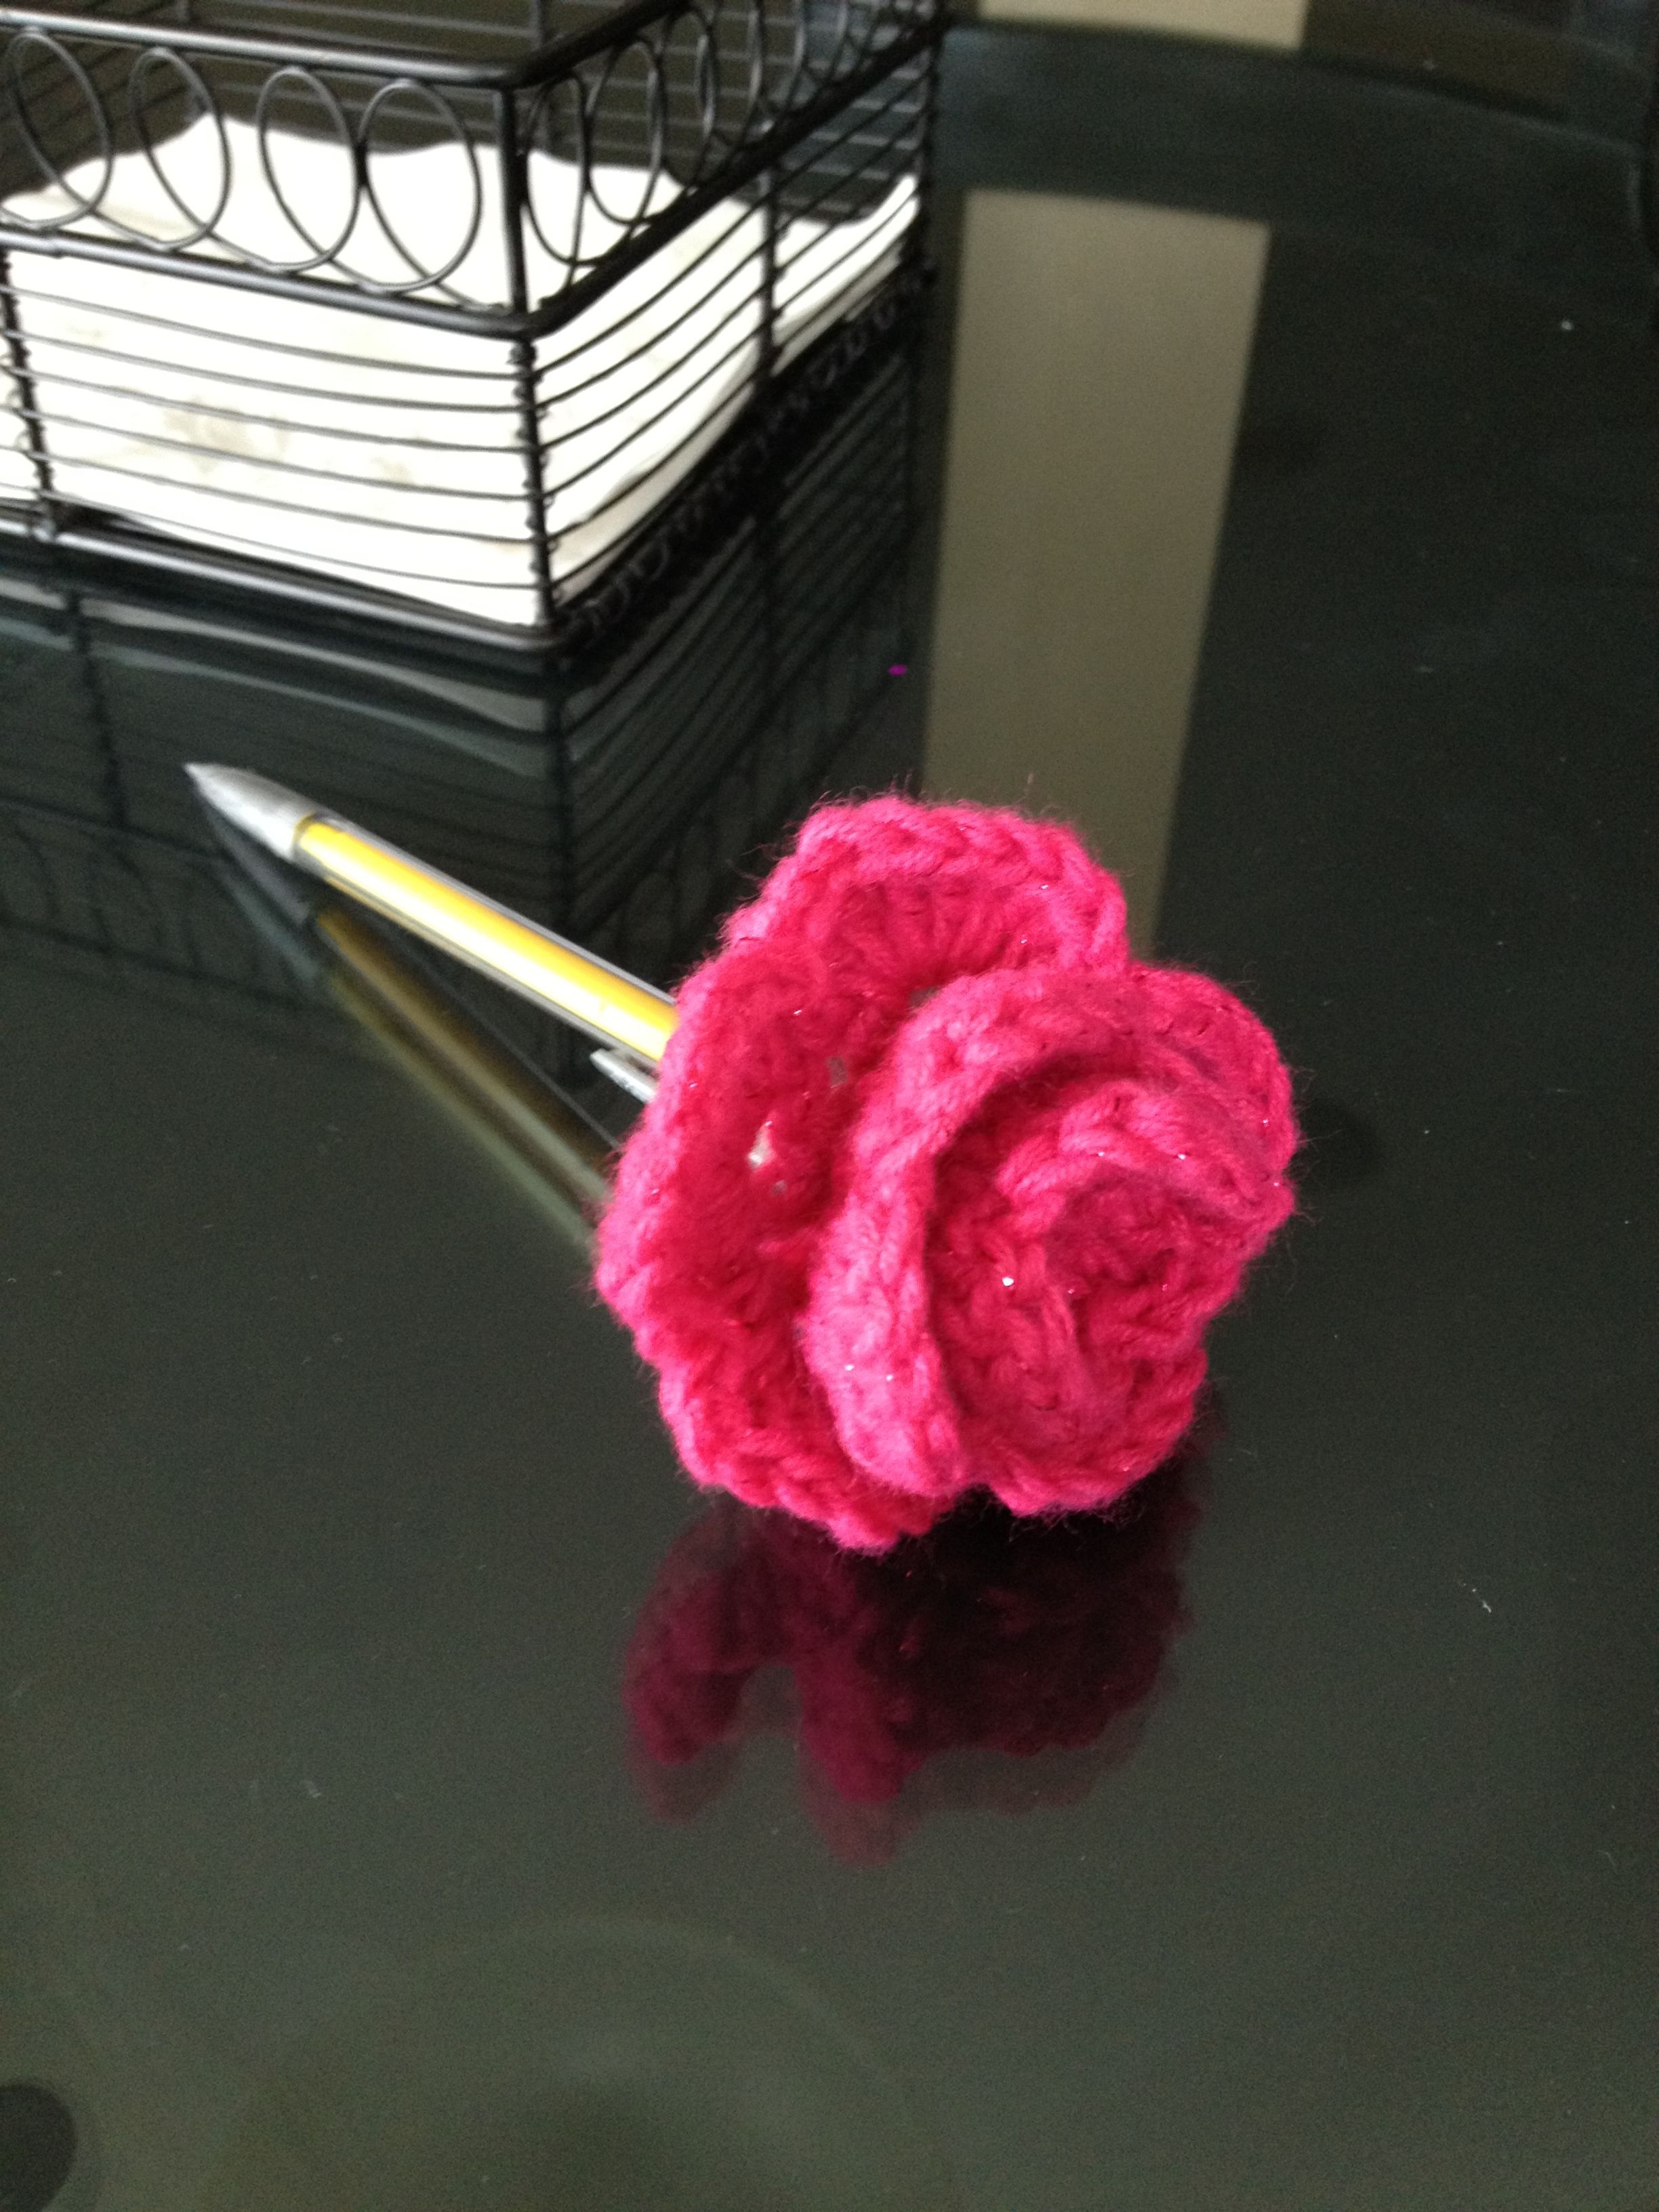 Crochet Rose Pencil Topper. Found this fun & free pattern online ...